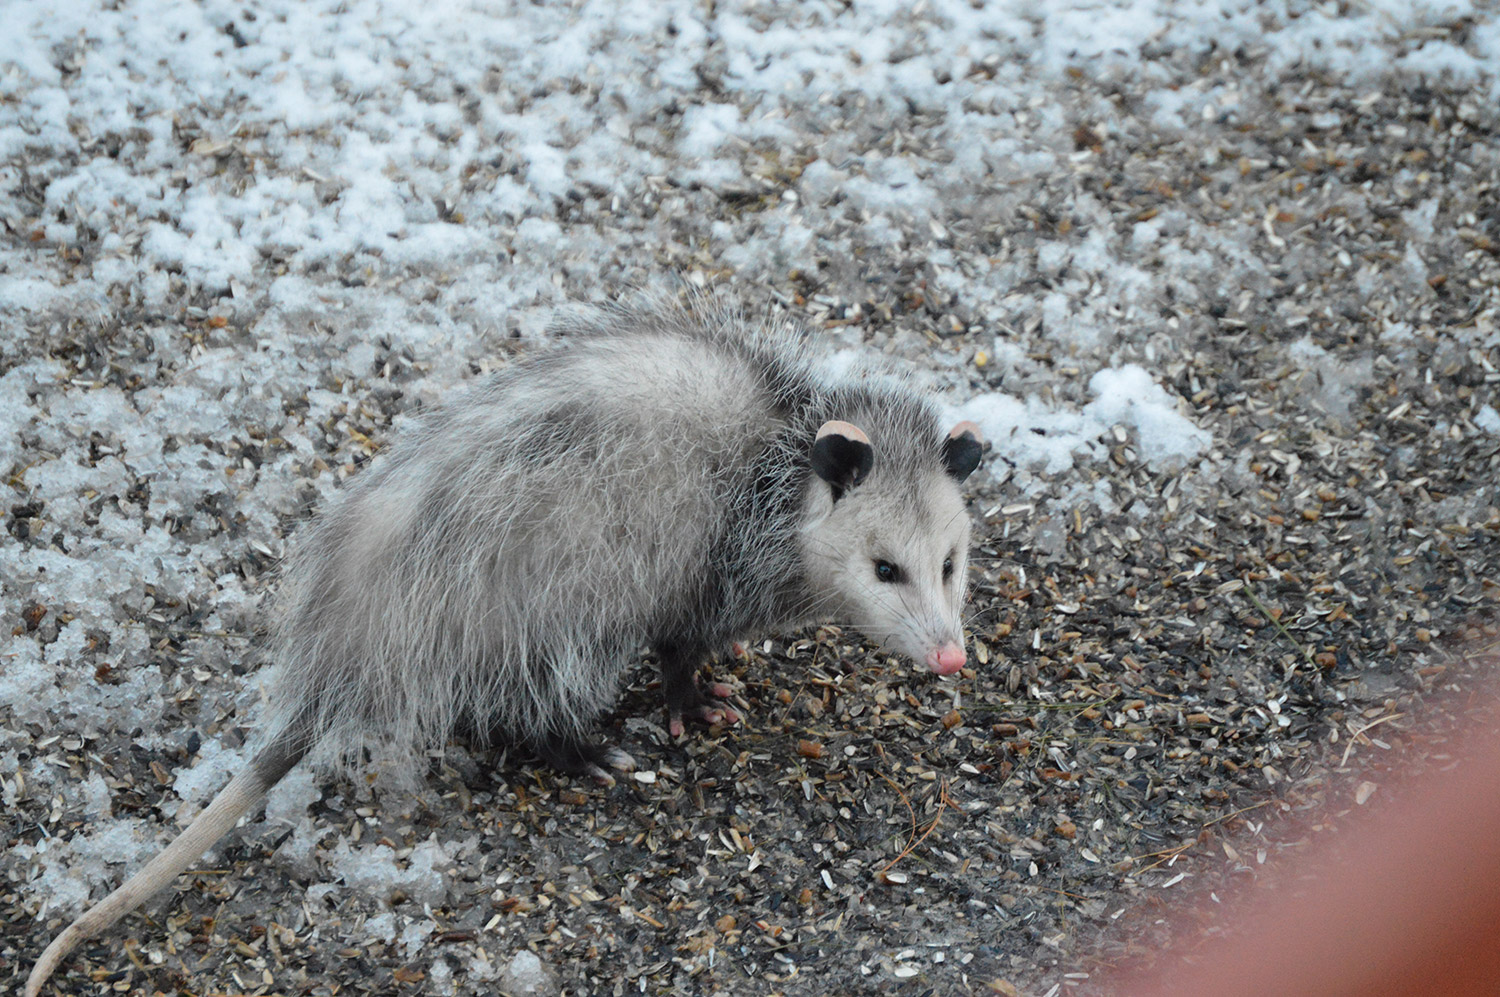 No need for this opossum to climb the bird feeders in Steven Edmondson's yard. Not when the birds scatter plenty of it for low-dwelling critters.